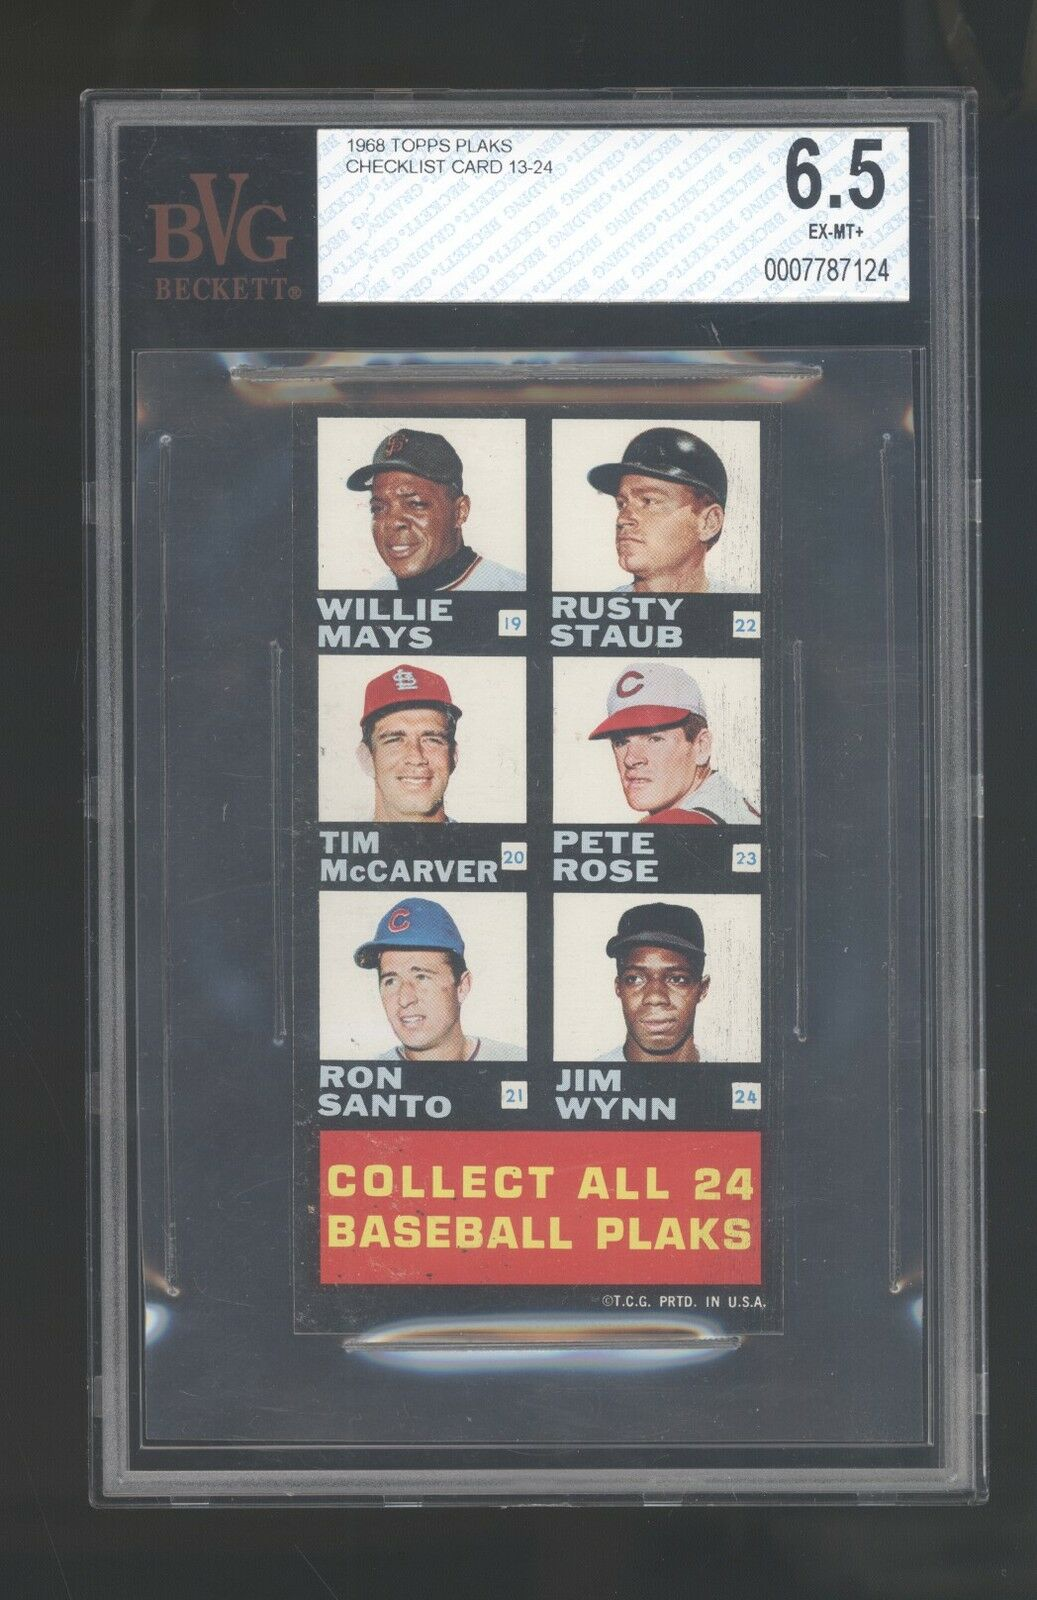 BVG 6.5 1968 Topps Plaks Checklist #2 13-24 Mays Aaron Rose Clemente Drysdale